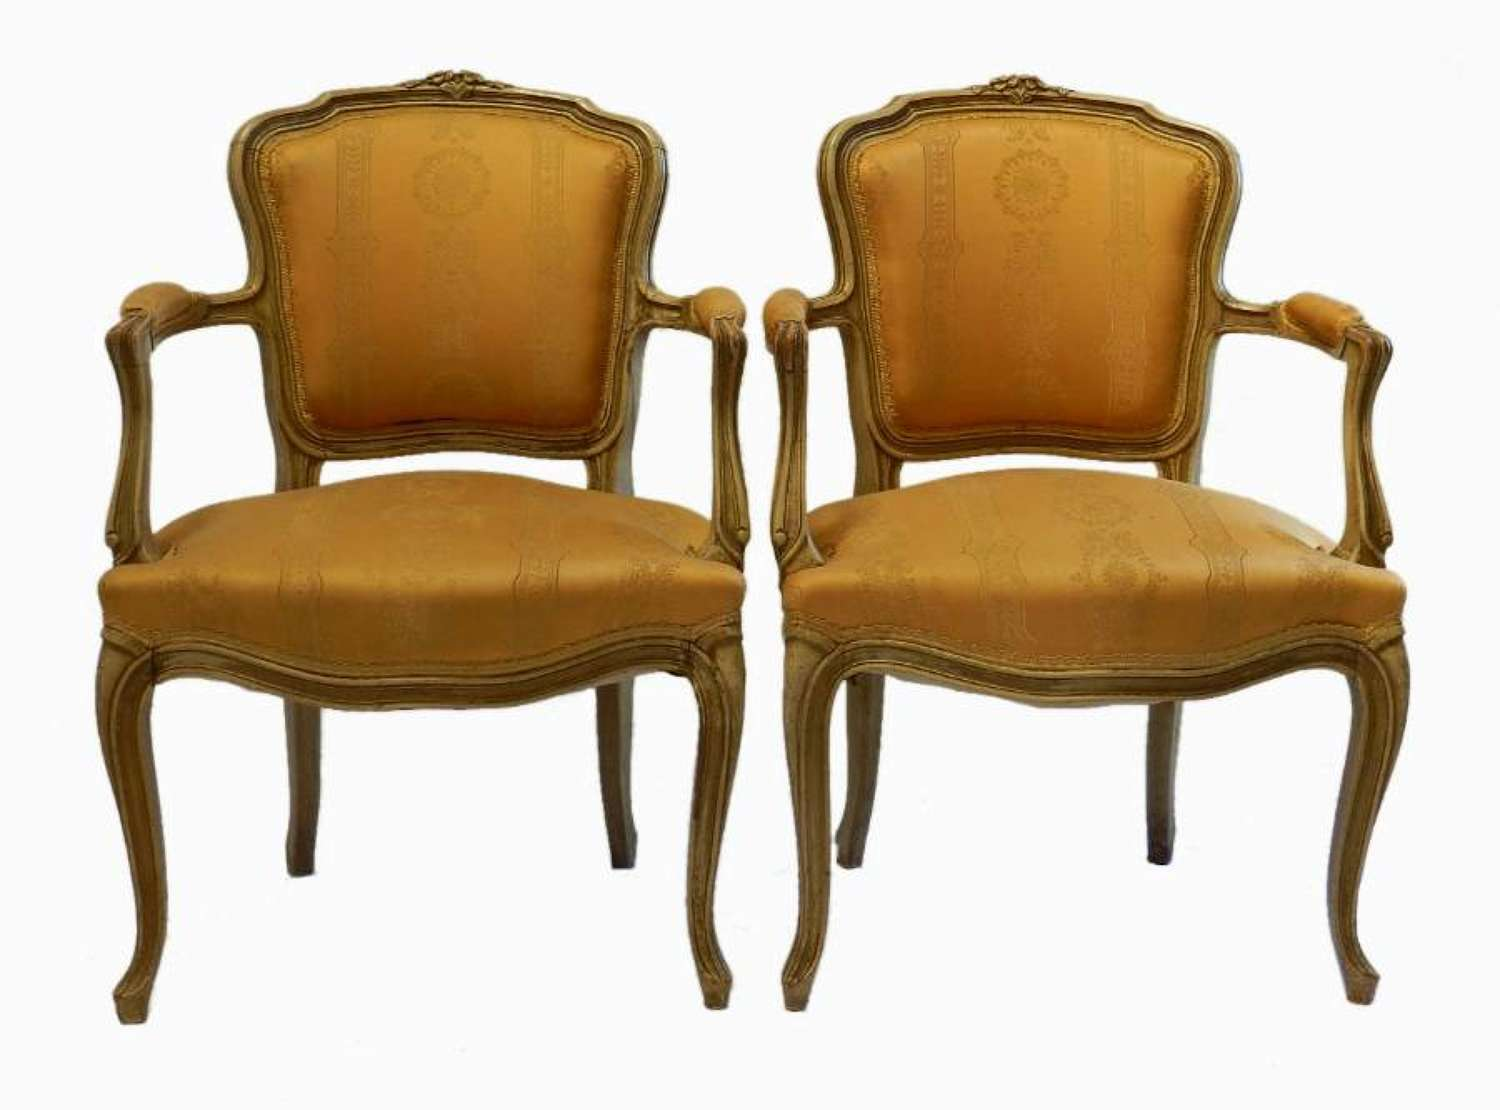 Pair of French Open Armchairs Cabriolet